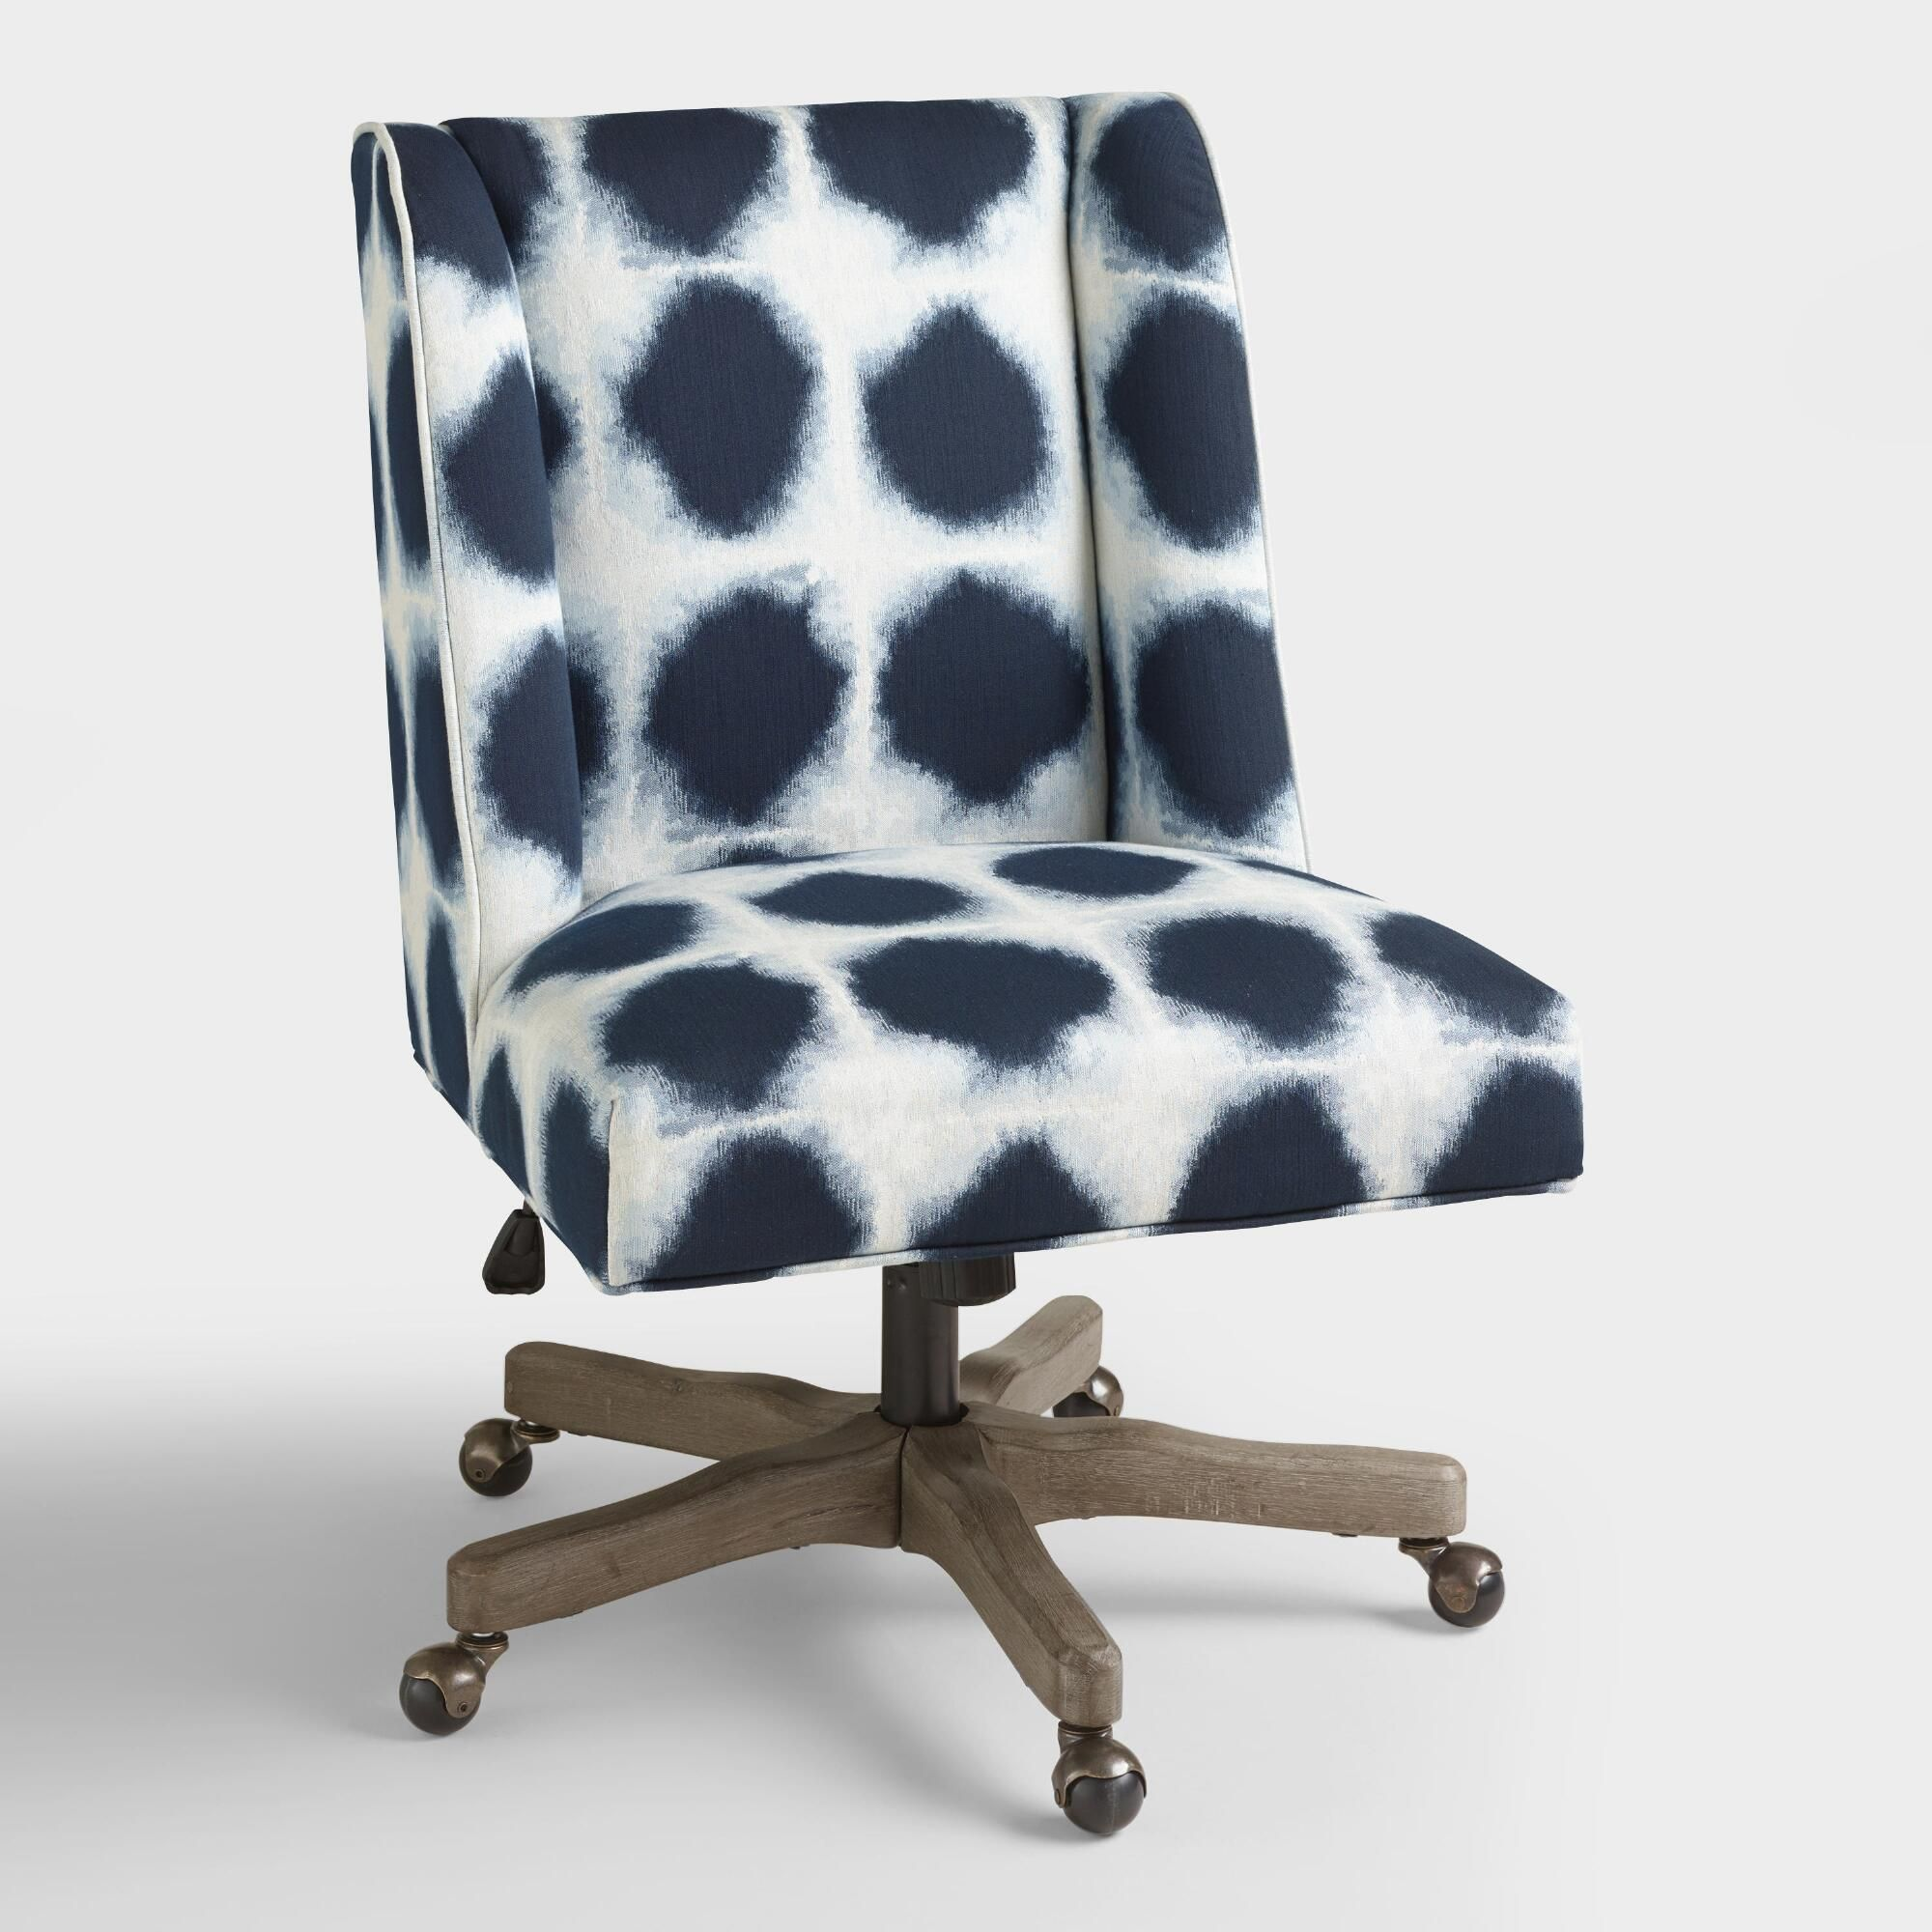 Decals For Baby Room, With An Updated Wingback Profile And Indigo Blue And White Abstract Patterned Fabric Upholstery Ou Upholstered Office Chair Office Chair Home Office Furniture